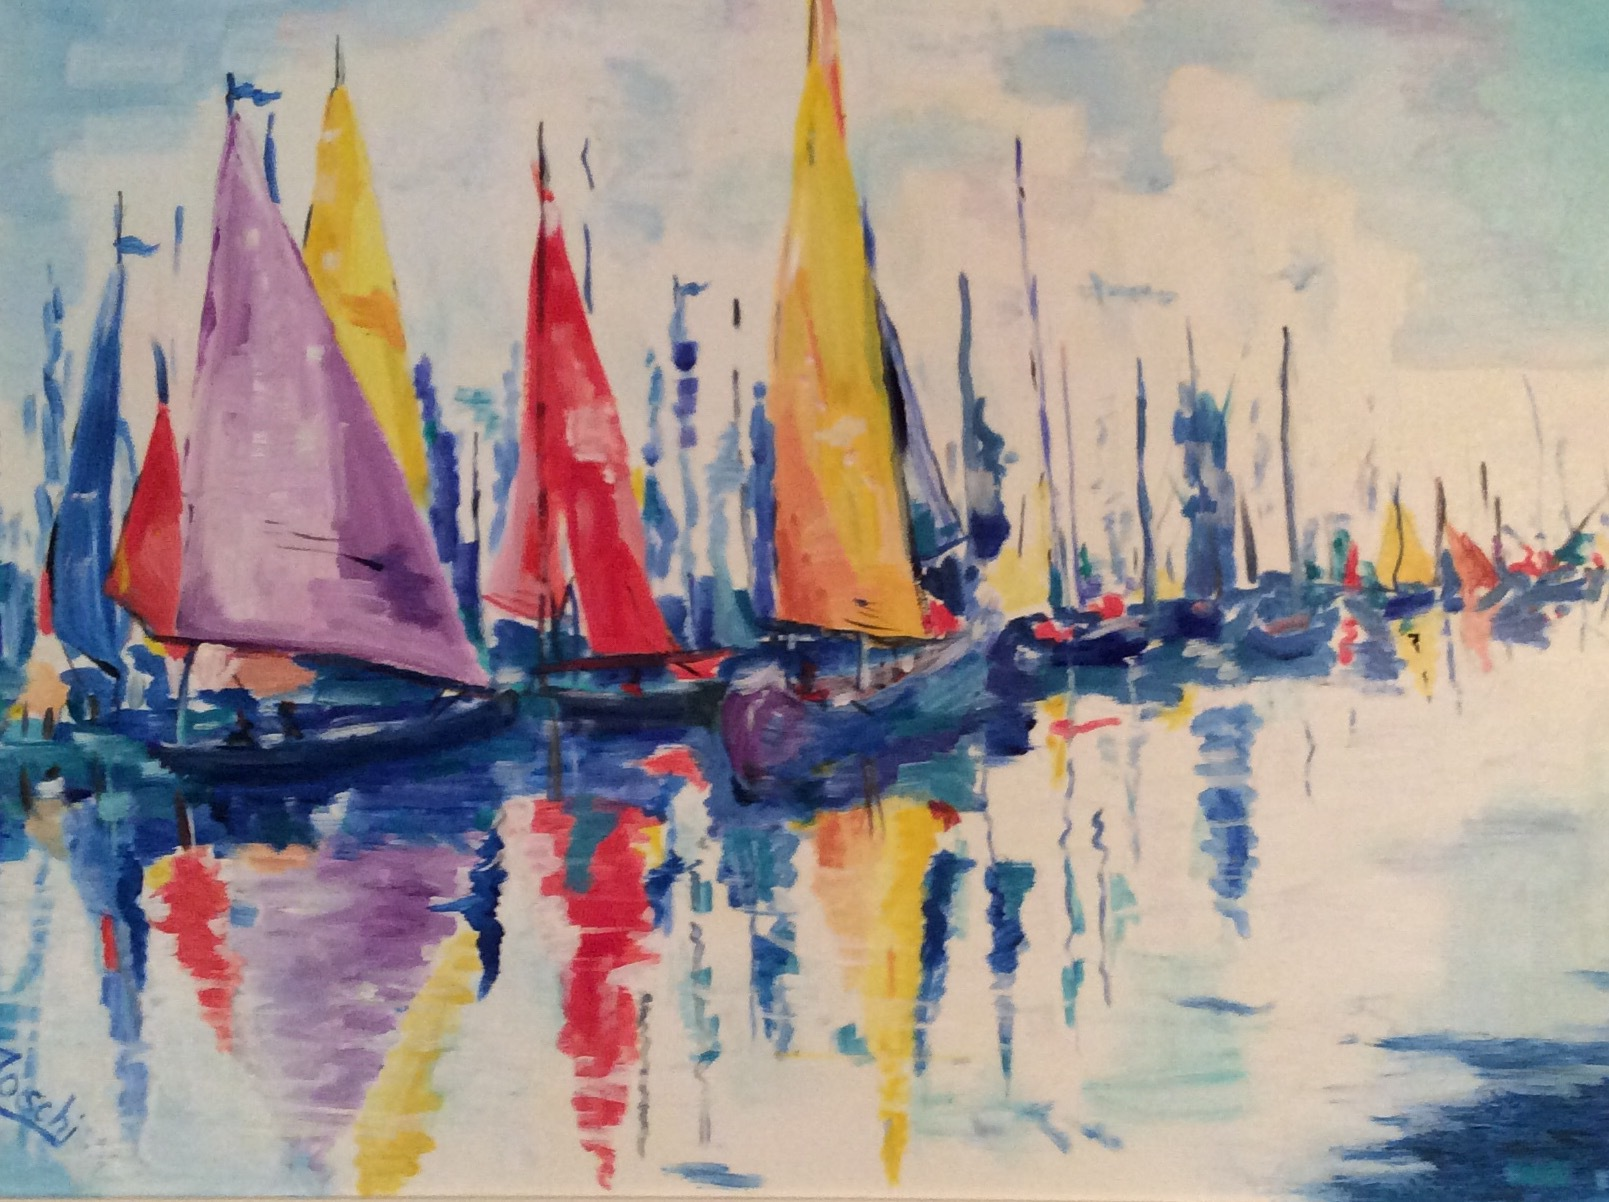 Sailboats at Rest